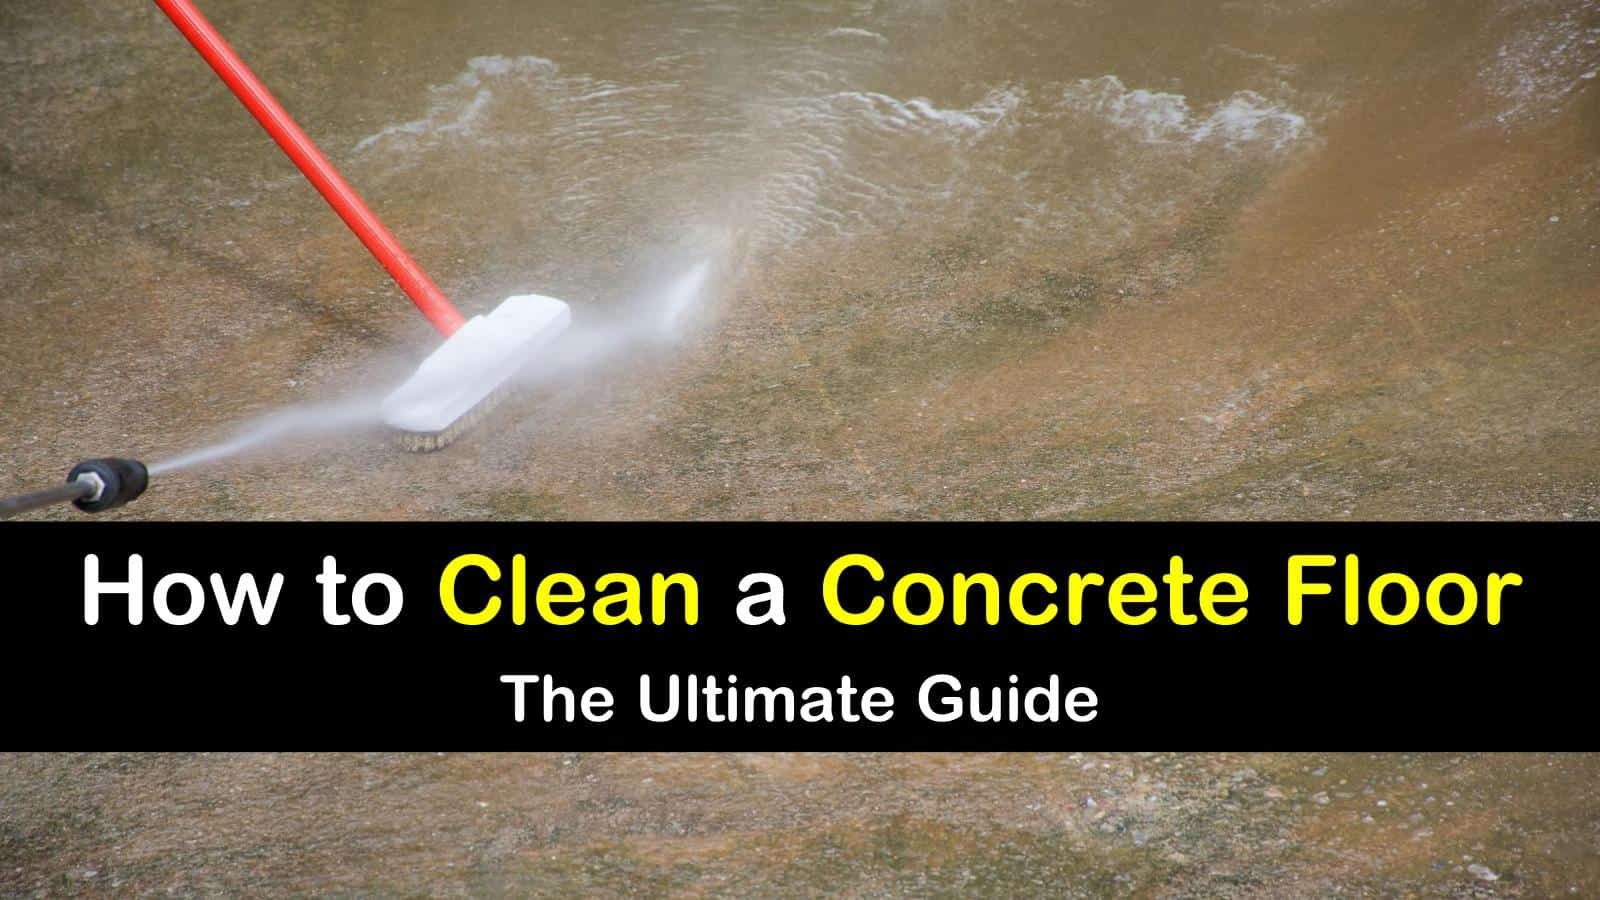 How To Clean A Concrete Floor The Ultimate Guide